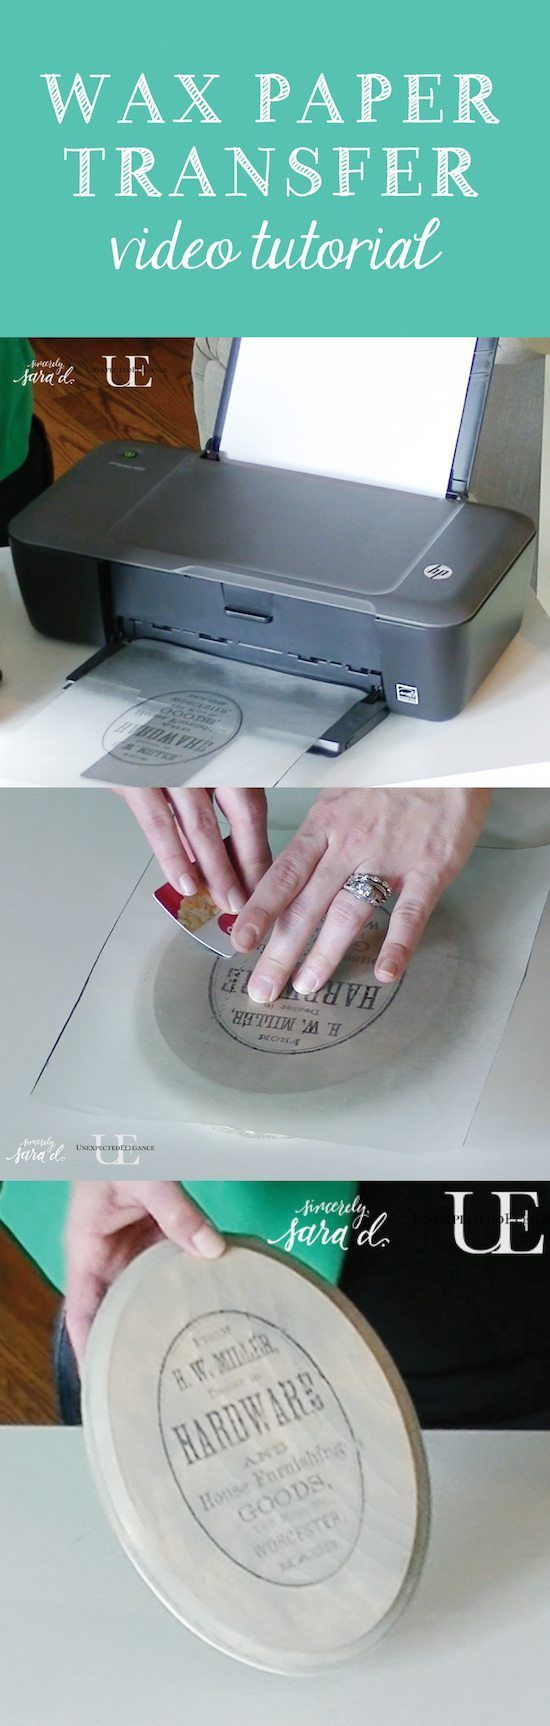 Tutorial from transferring images using wax paper.  #DIY #imagetransfer